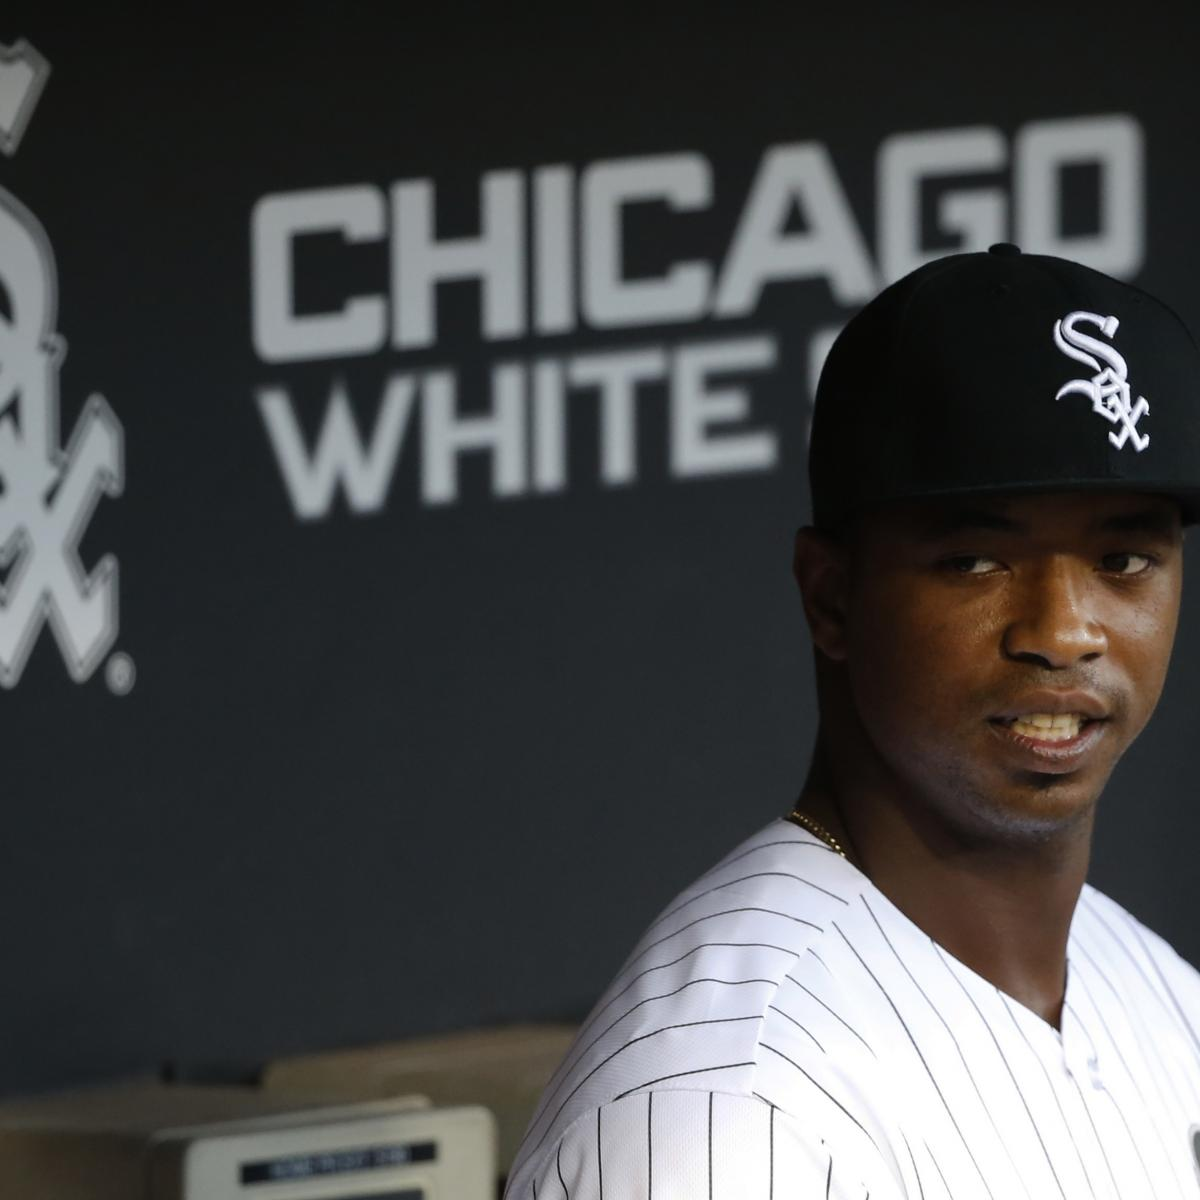 Mlb Phenom Eloy Jimenez Will Prove Hes Next Miguel Cabrera Or Jd Baseball Cap Free Size 003 Martinez Bleacher Report Latest News Videos And Highlights